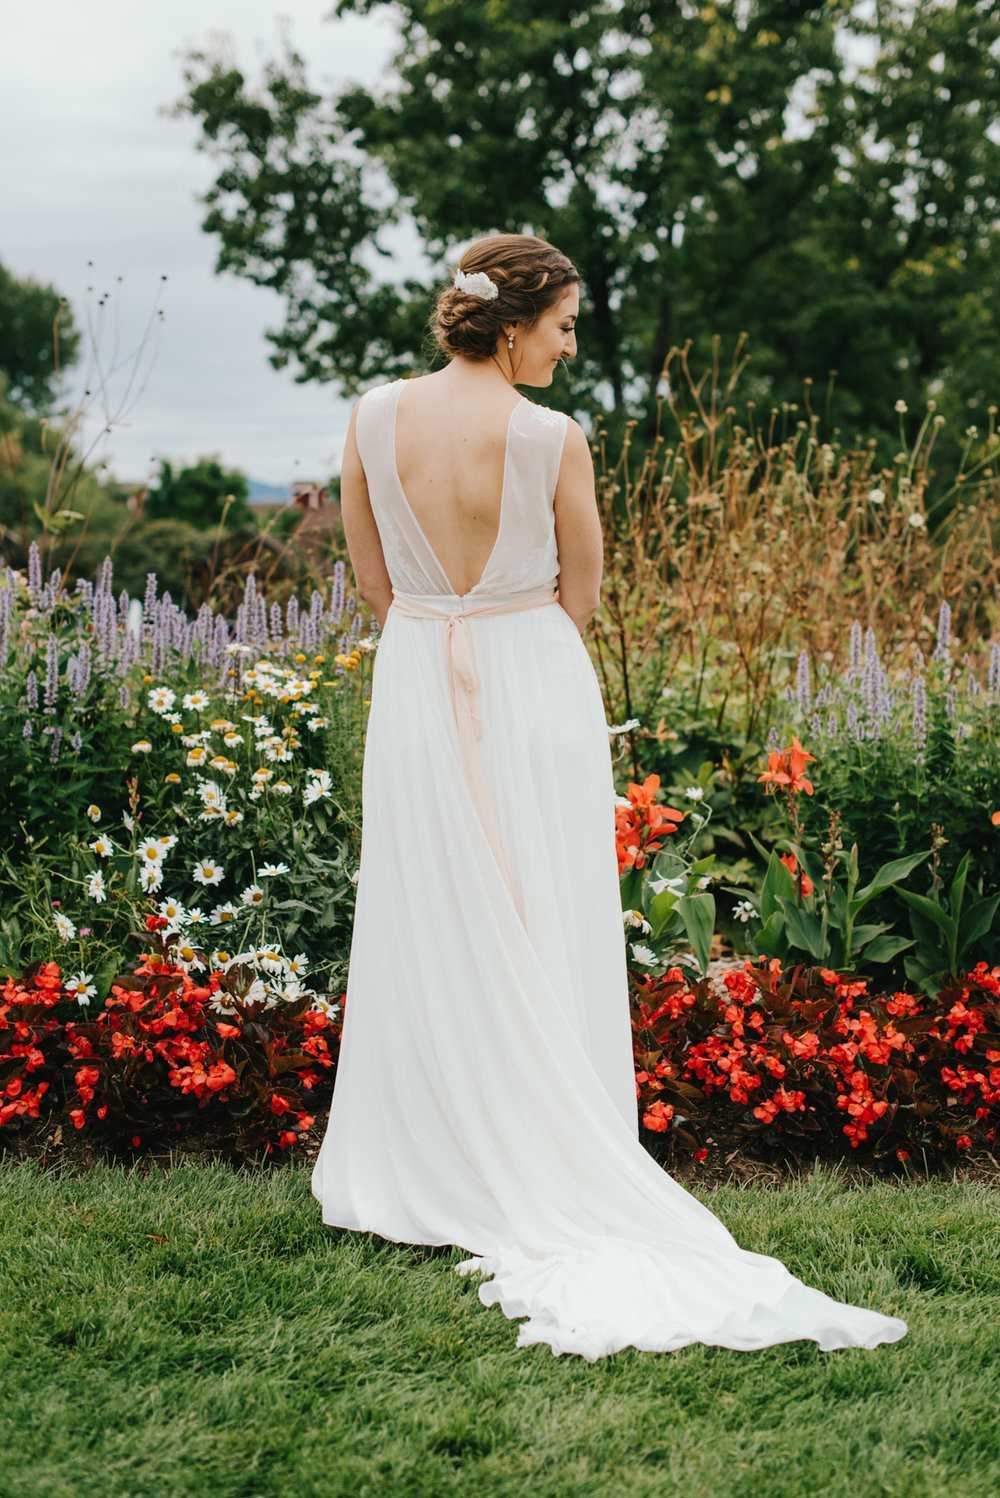 Lindsey standing in front of the beautiful wildflowers at Hudson Gardens on her wedding day. Her and Geoff decided that Hudson Gardens would be the perfect place for all of their friends and family to father for a wedding.